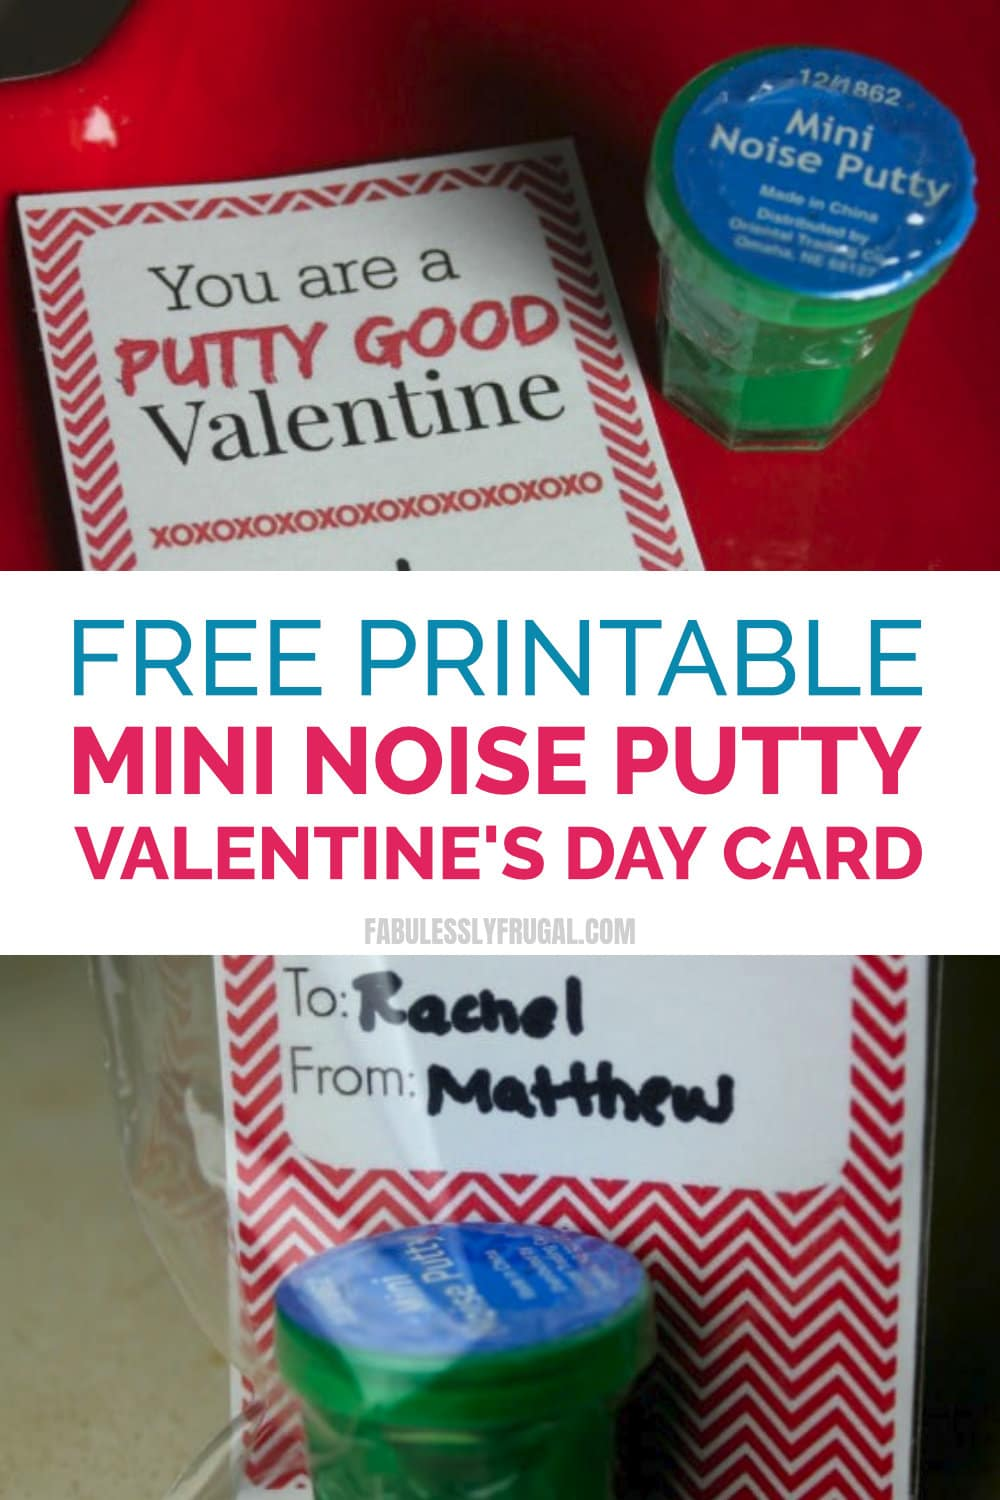 free printable mini noise putty card for valentines day